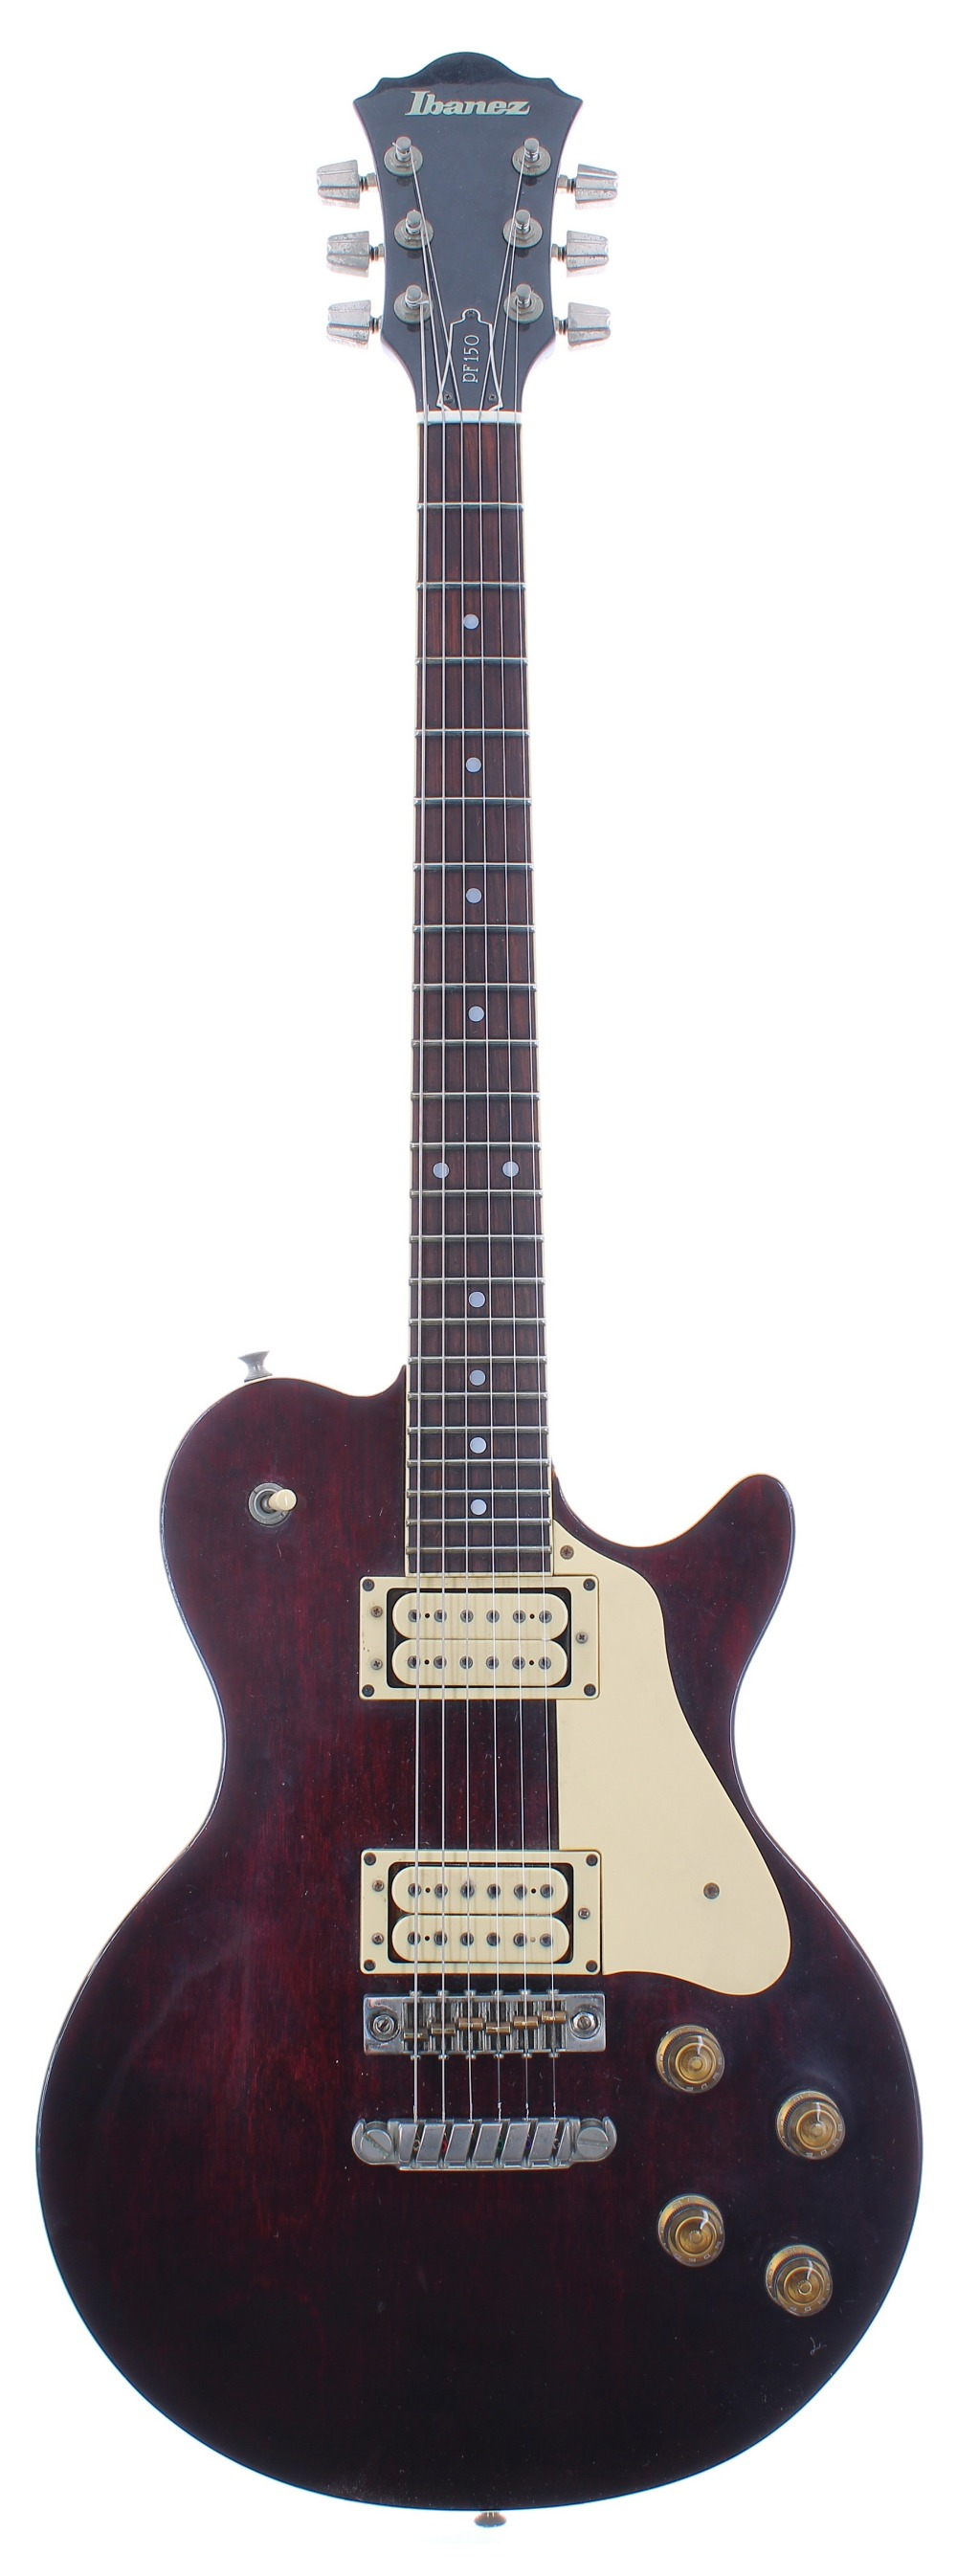 1980 Ibanez Performer Series PF150 electric guitar, made in Japan, ser. no. E8xxxx6; Finish: wine